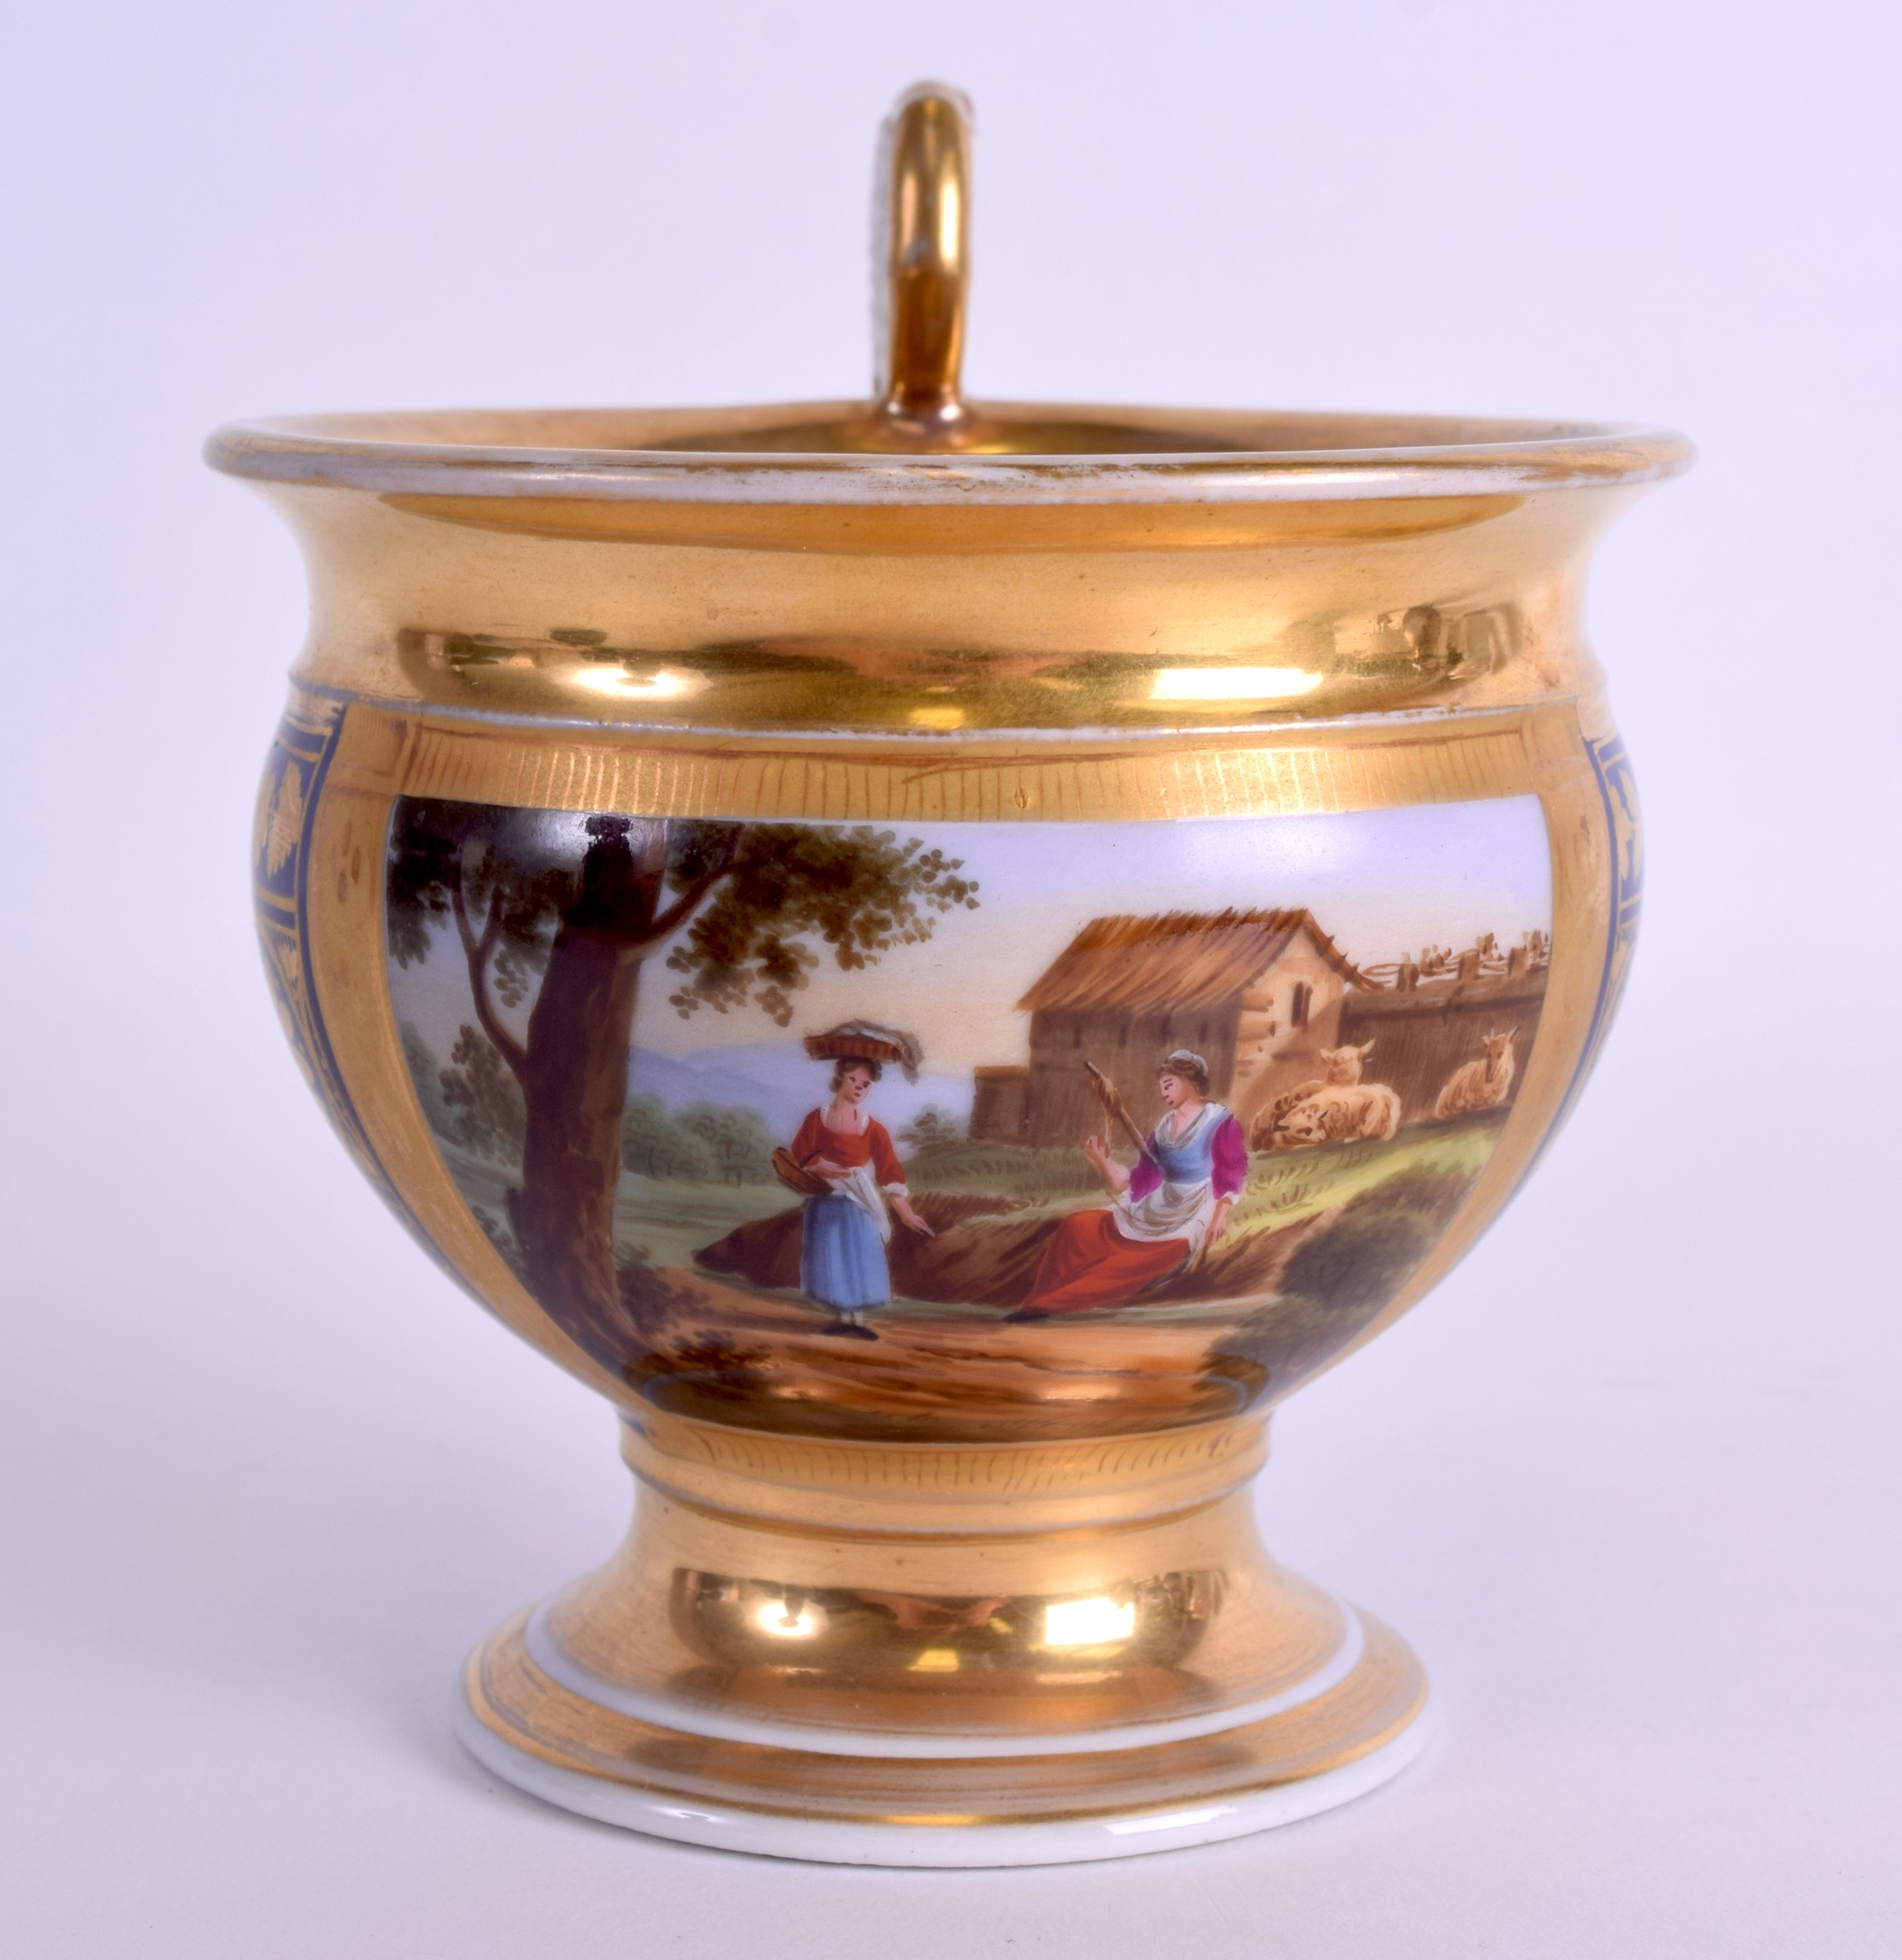 Lot 92 - A LARGE MID 19TH CENTURY FRENCH PORCELAIN CABINET CUP painted with two figures within landscapes. 13